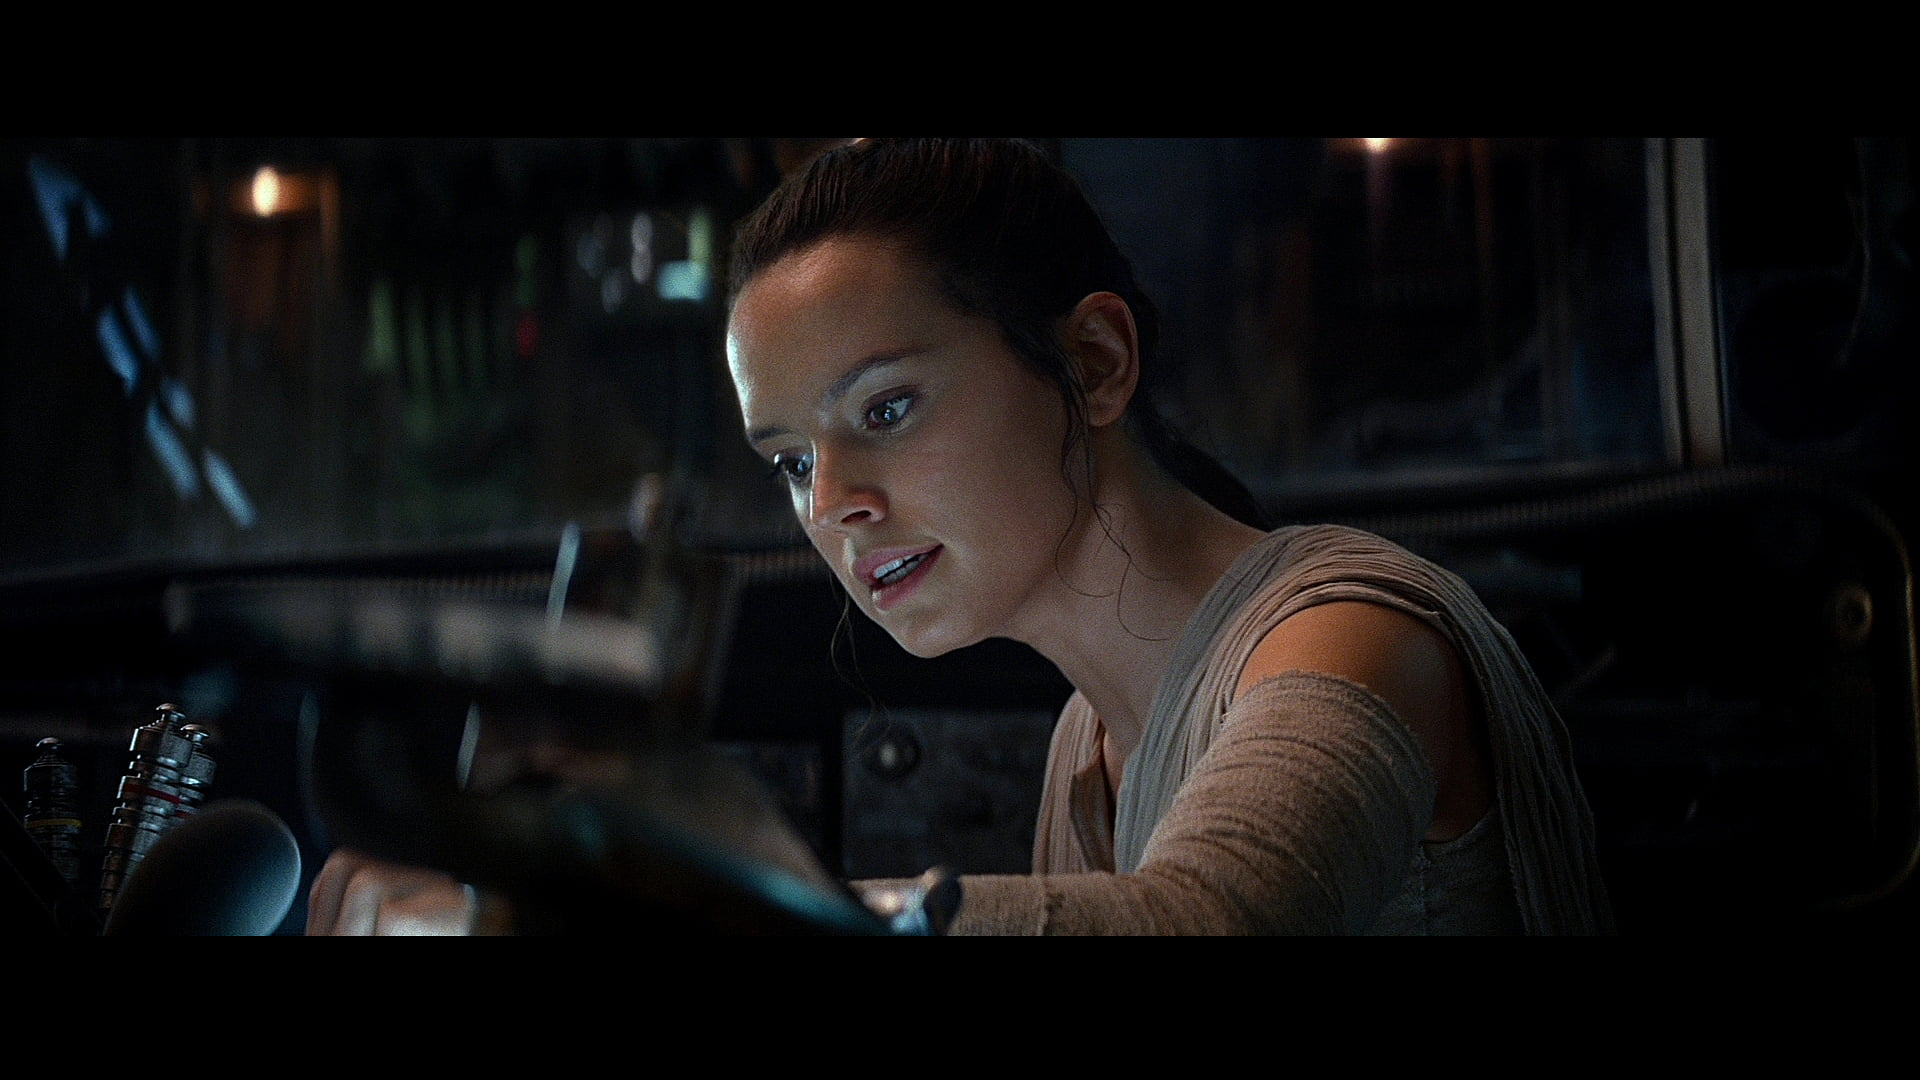 Daisy Ridley Wallpaper Hd Posted By Christopher Thompson